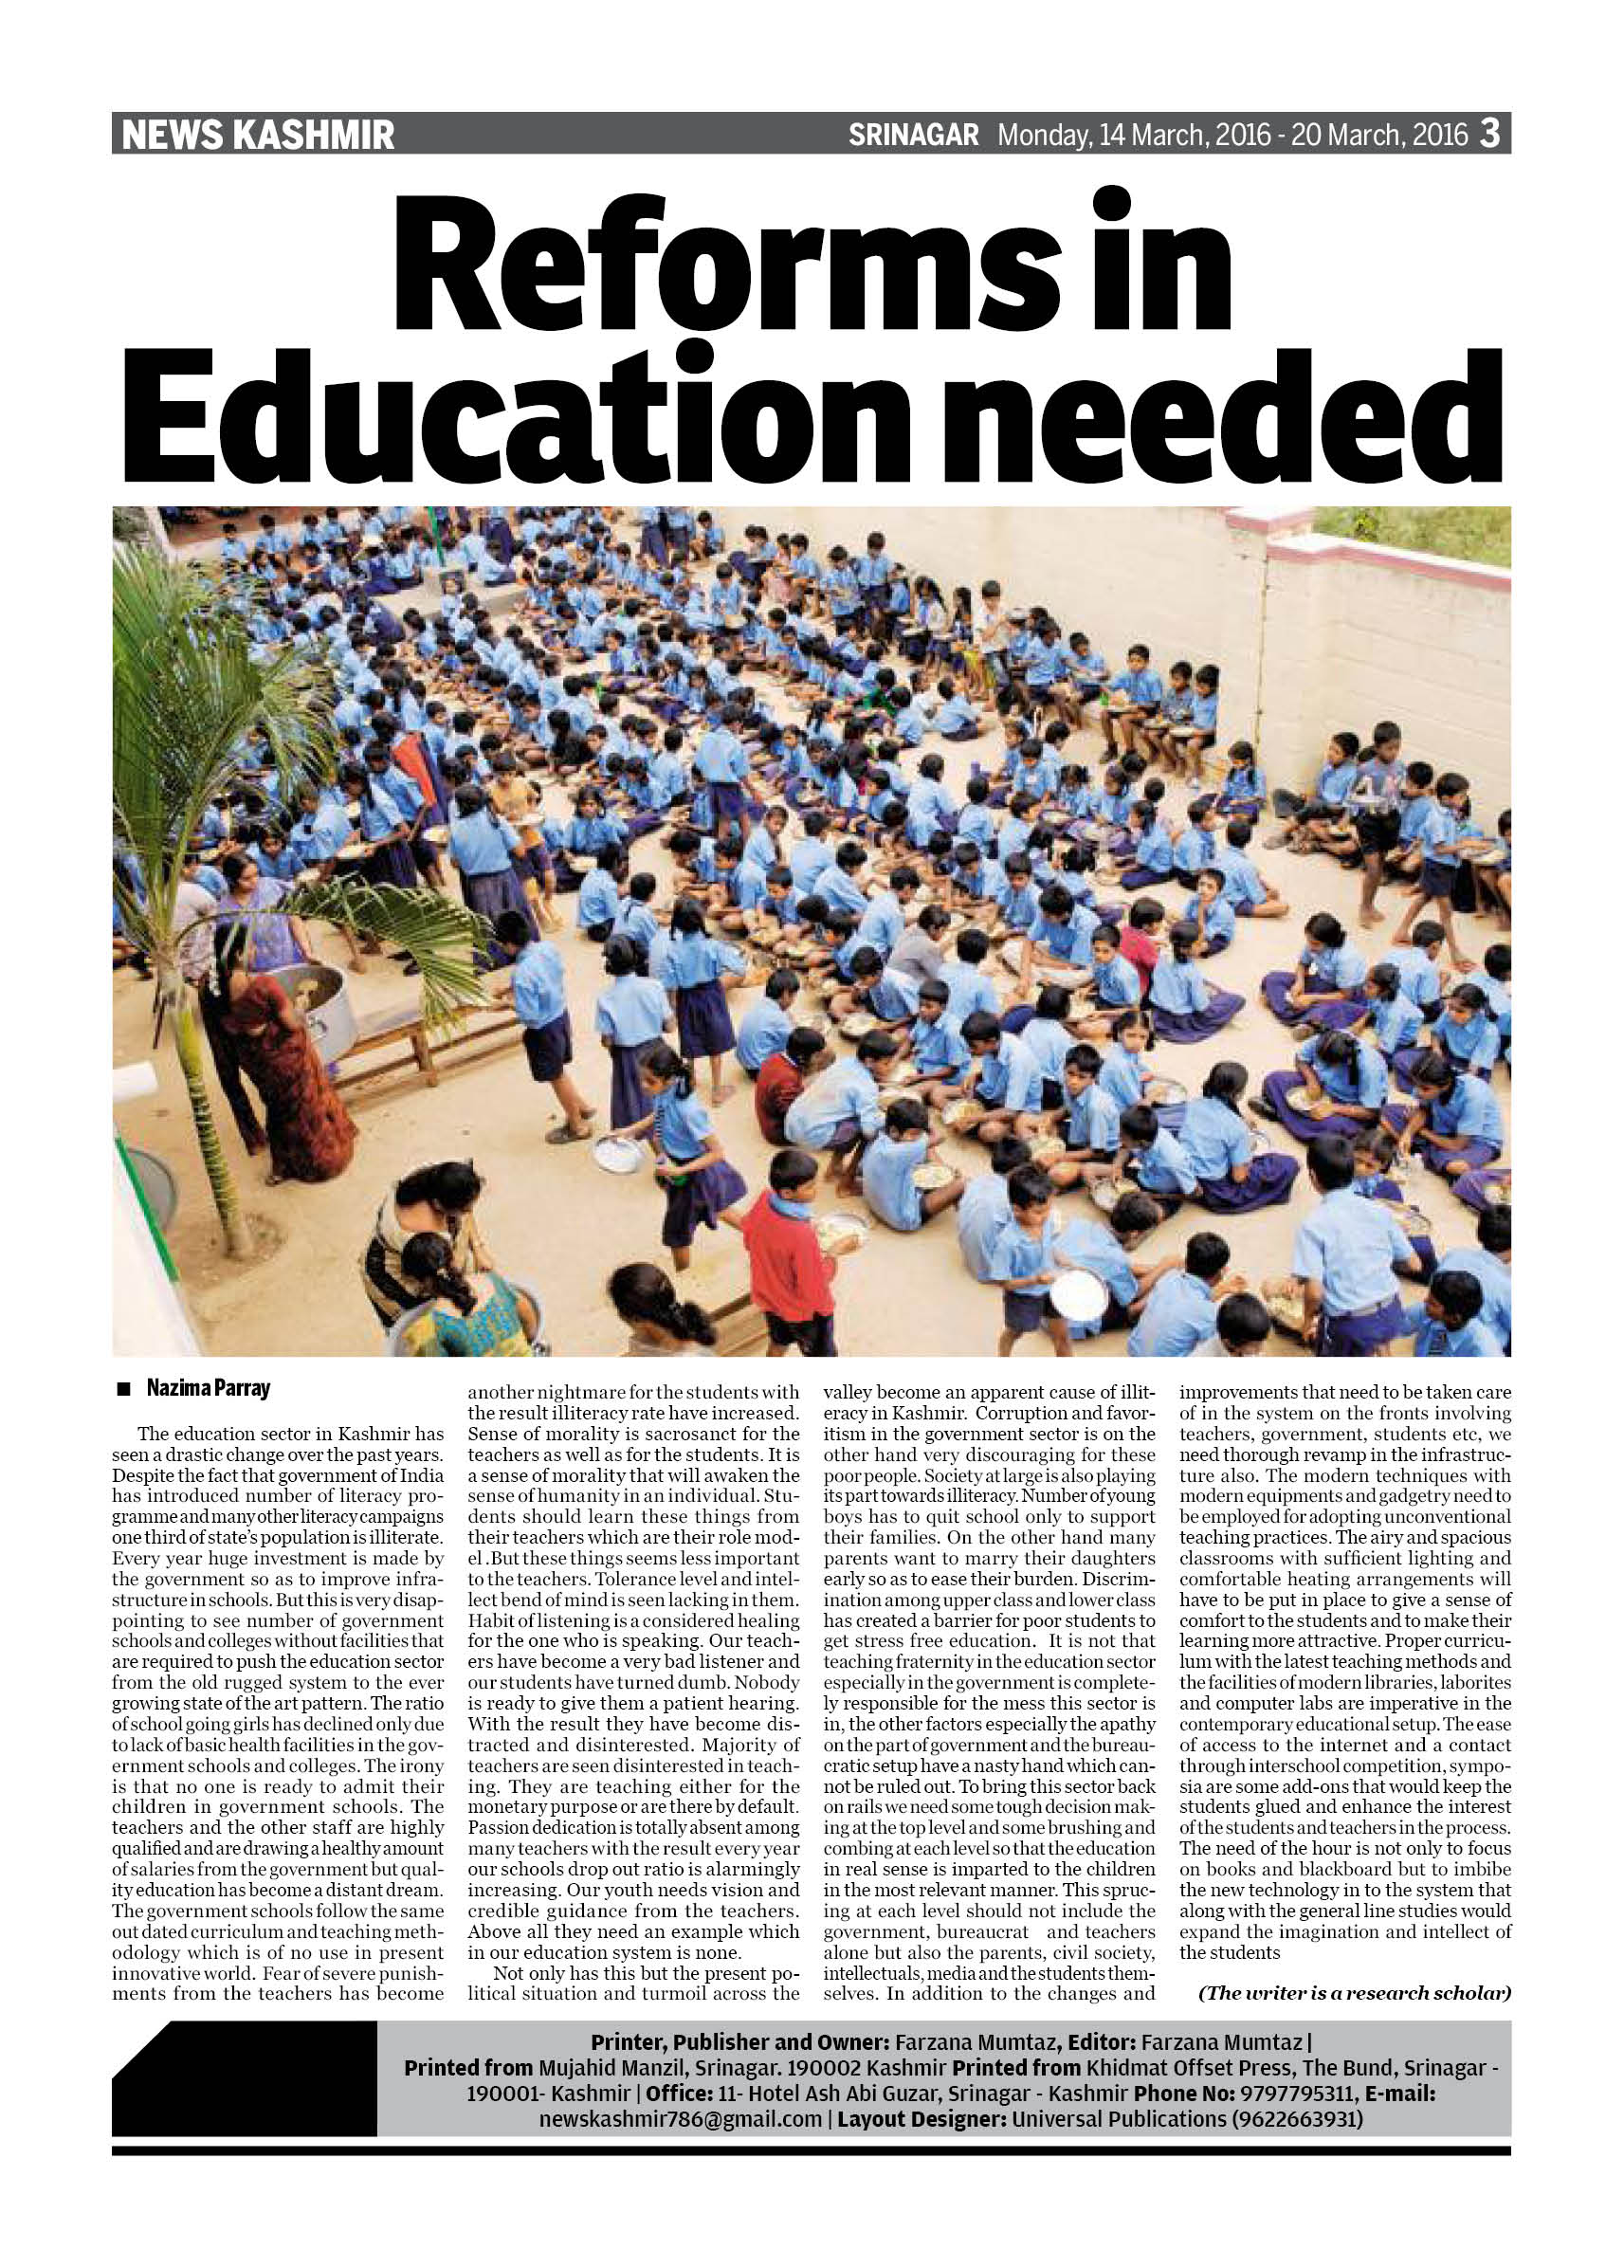 Reforms in Education needed